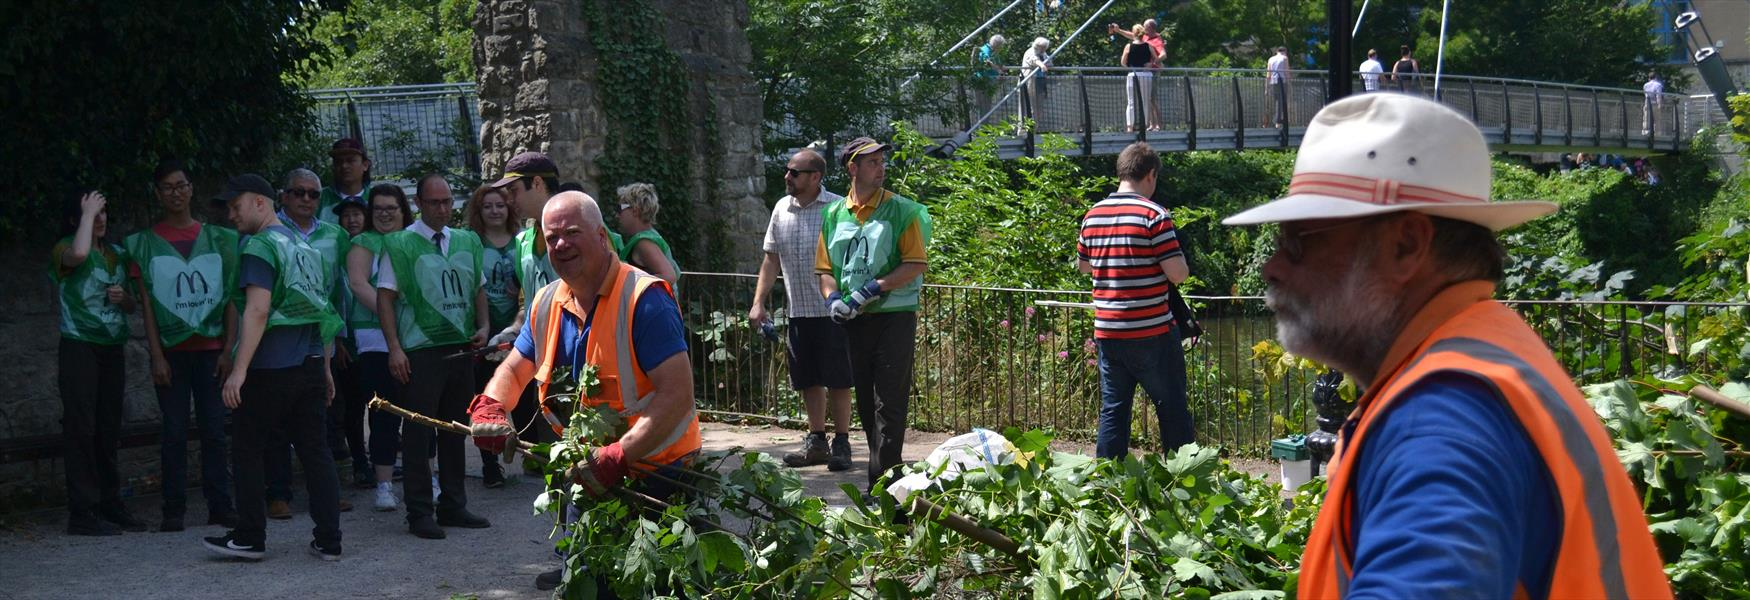 Maidstone River Park Partnership organise a clear up with volunteers from McDonald's  helped By MBC